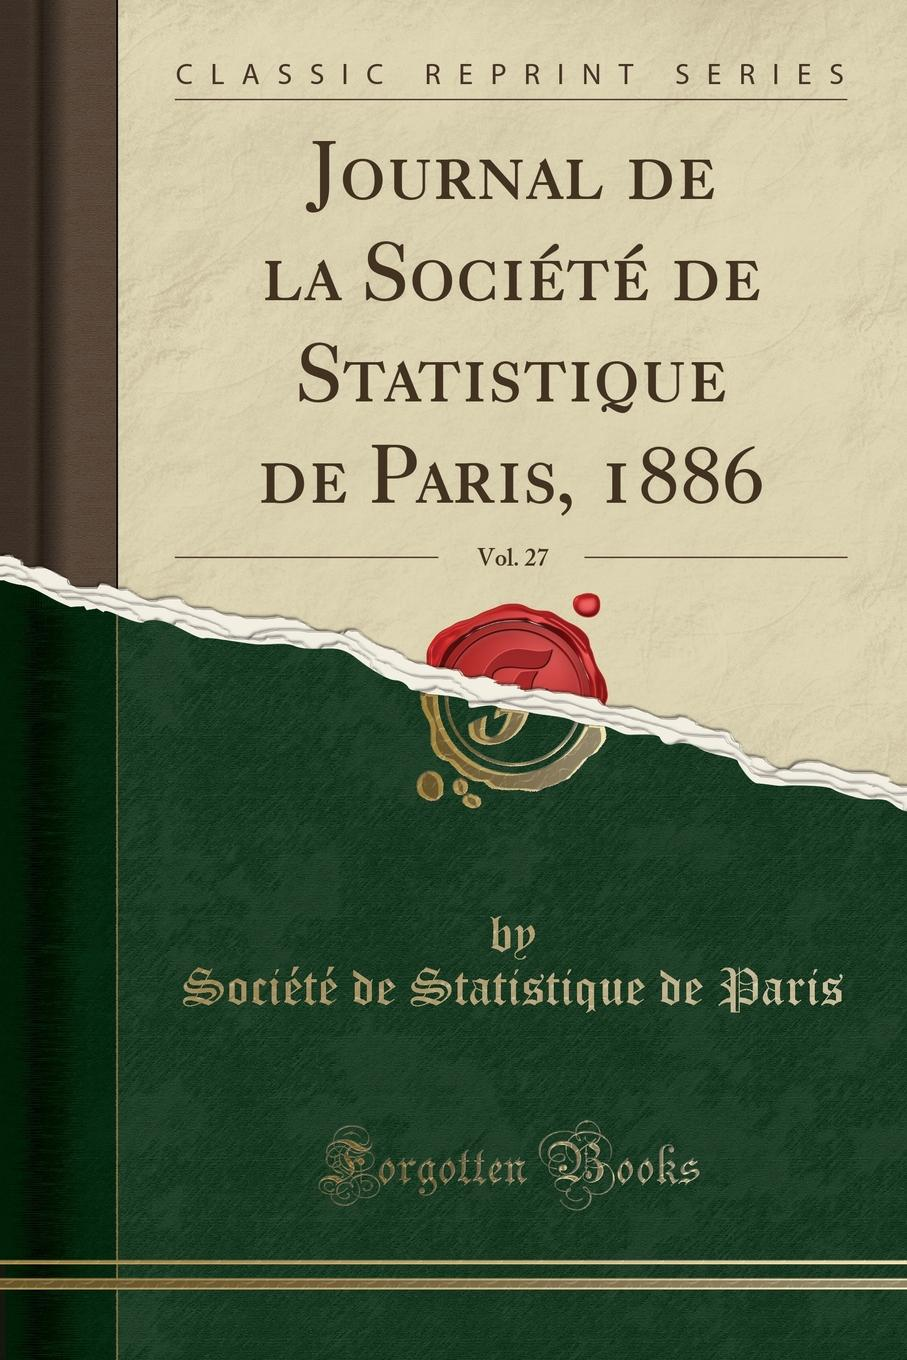 Journal de la Societe de Statistique de Paris, 1886, Vol. 27 (Classic Reprint) Excerpt from Journal de la SociР?tР? de Statistique de Paris, 1886...